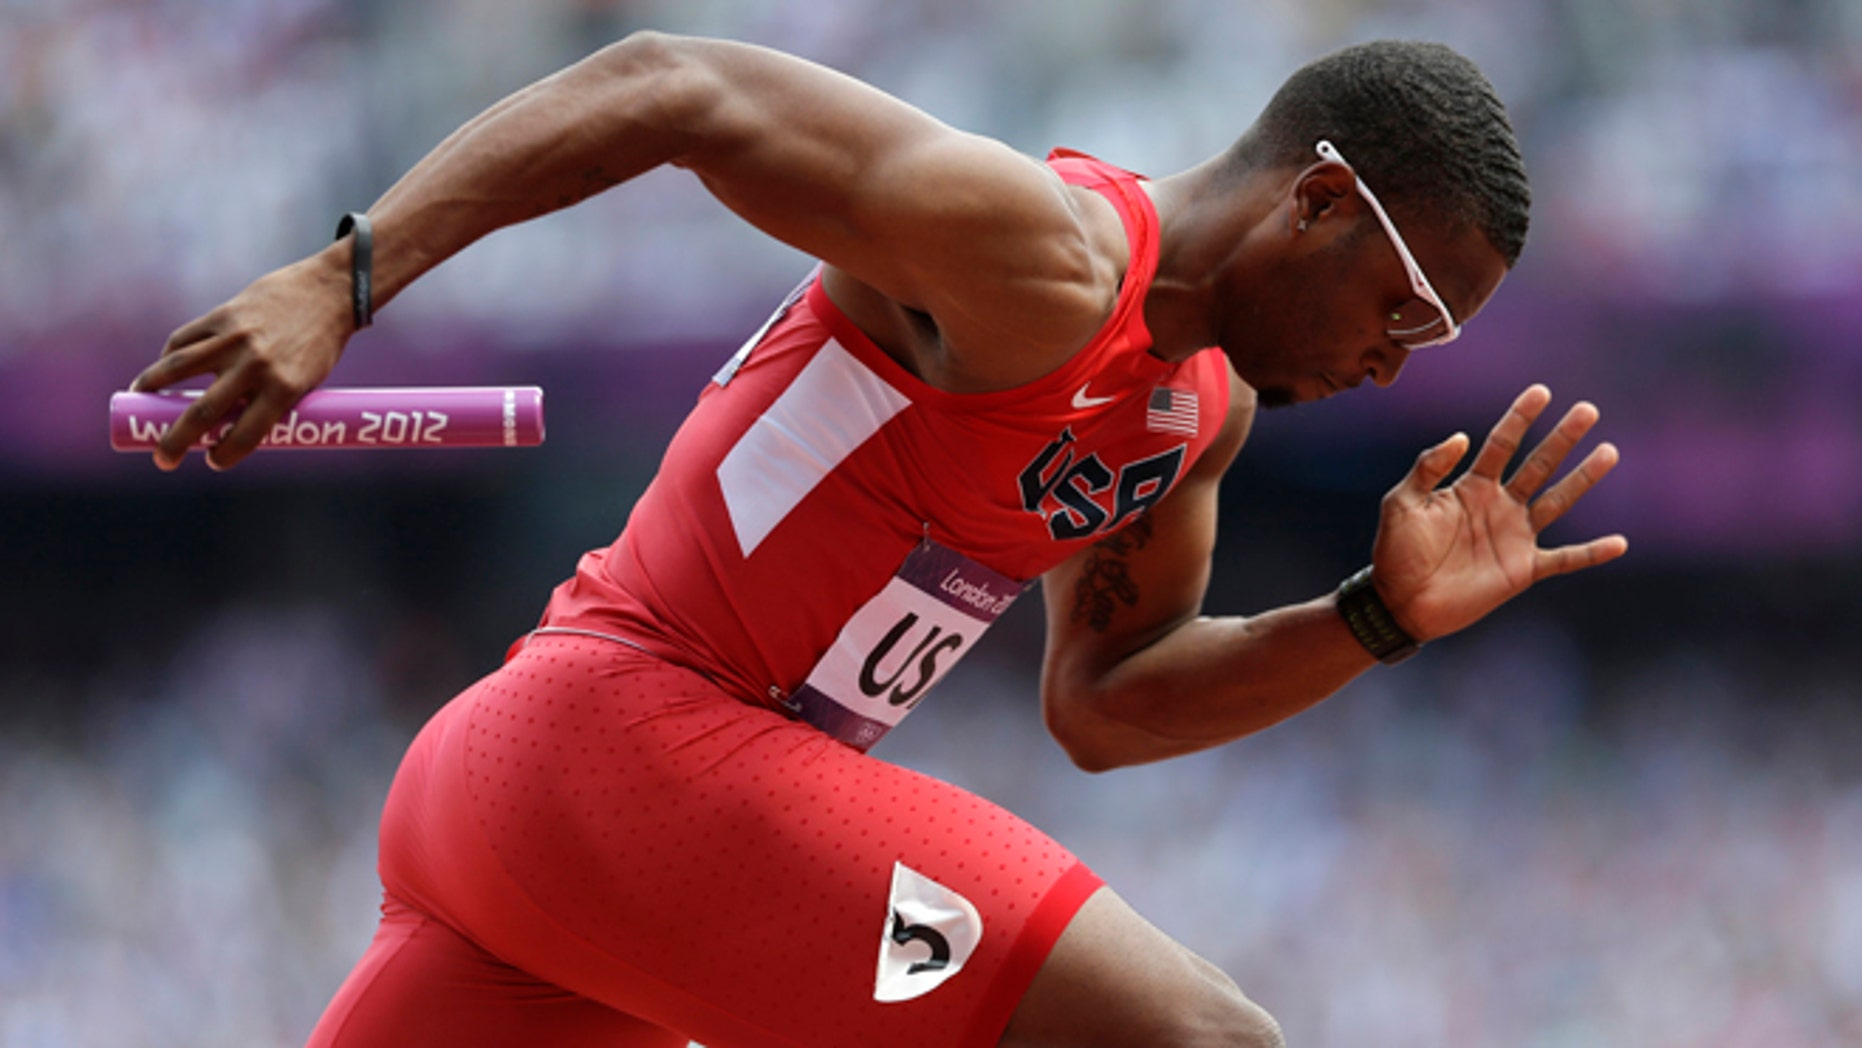 Aug. 9, 2012: United States' Manteo Mitchell competes in a 4x400-meter relay heat at the London Olympics.